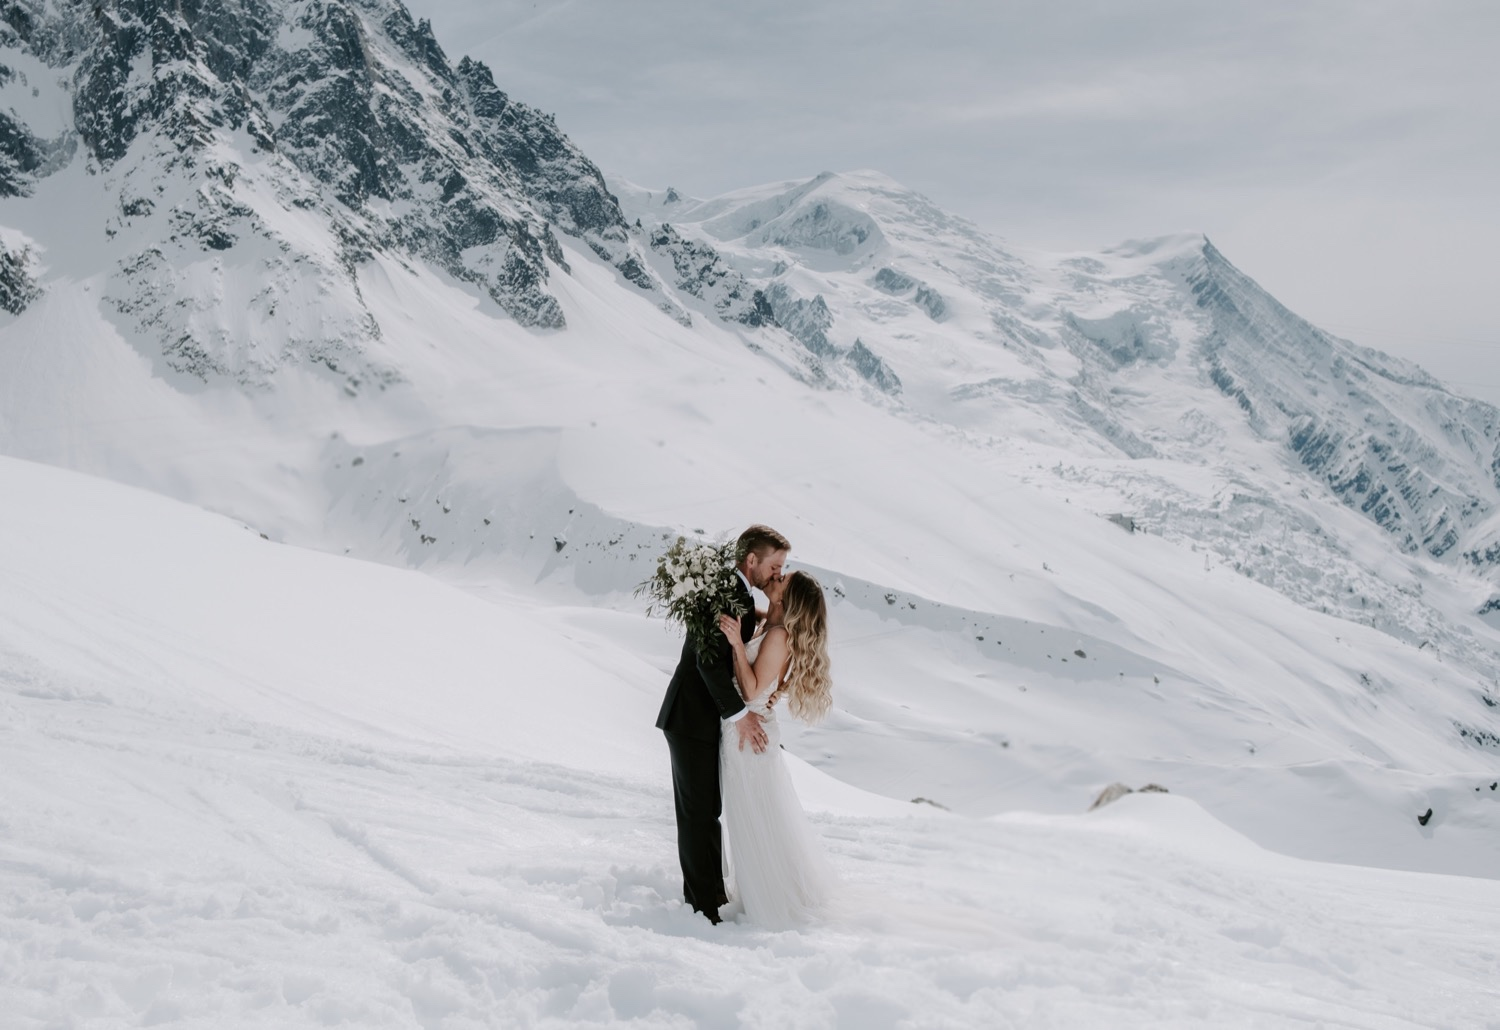 Chamonix-France-Elopement-Destination-Elopement-Photographer-22.jpg